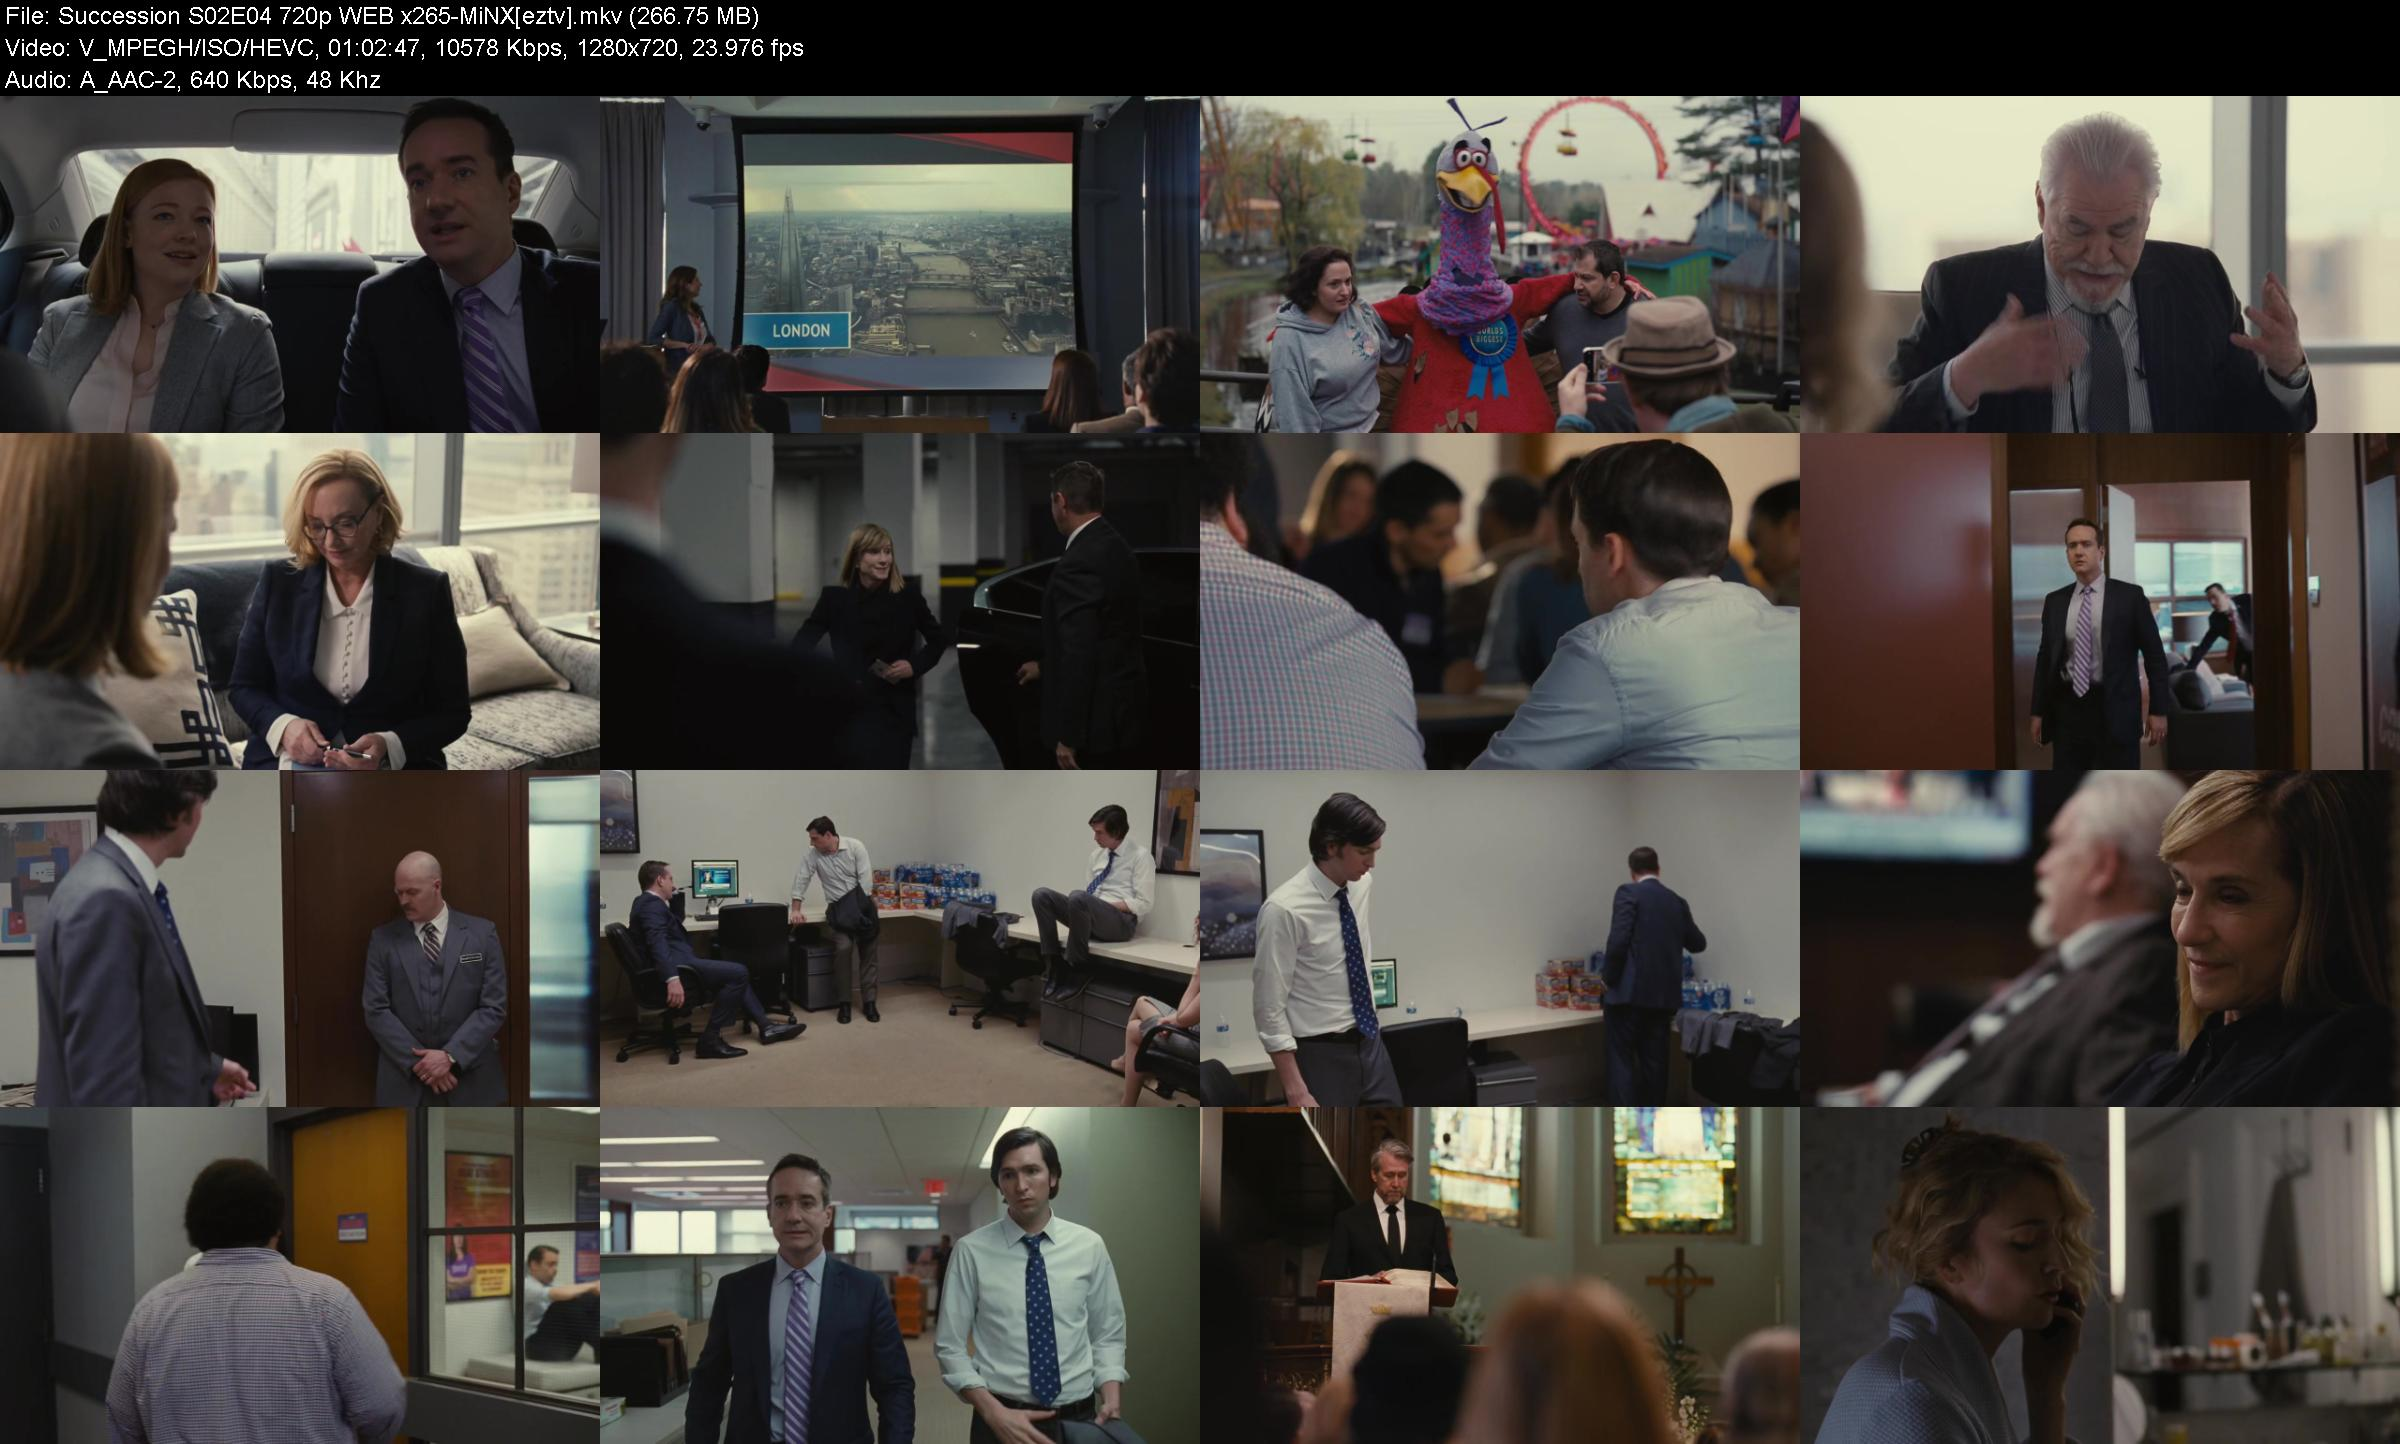 Succession S02E04 720p WEB x265-MiNX